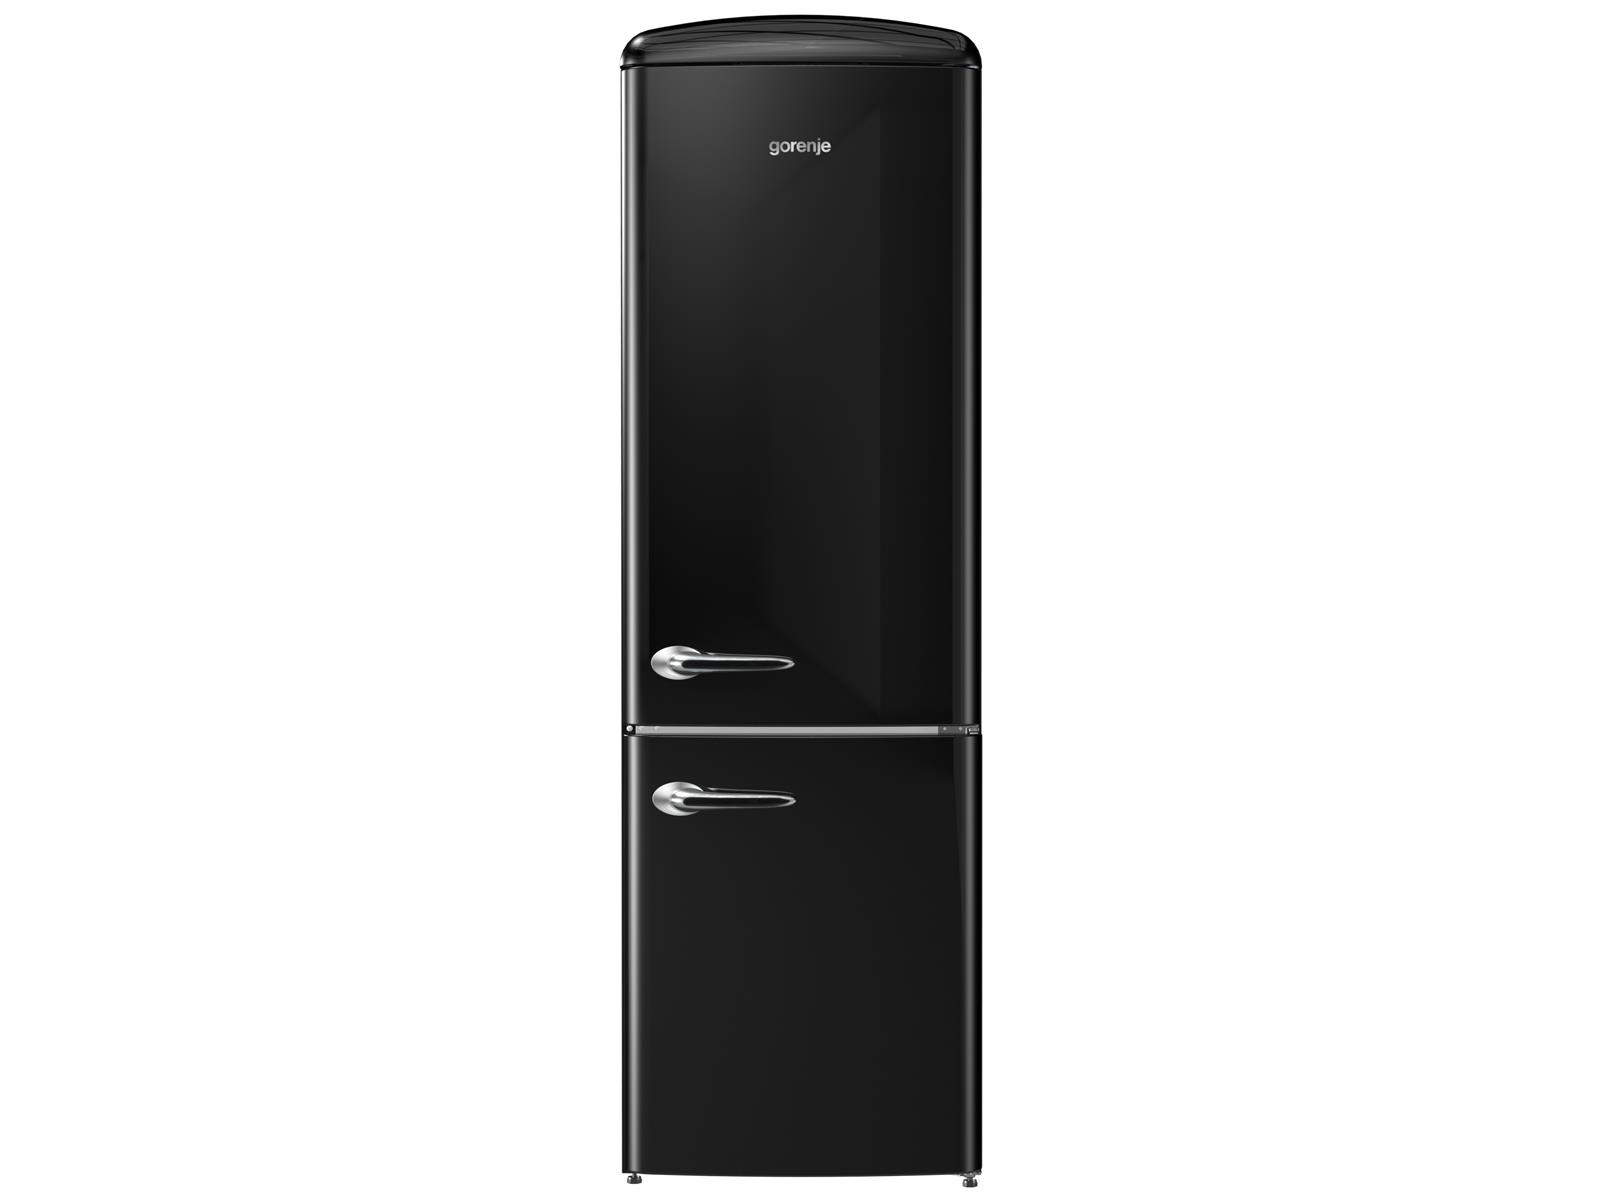 gorenje onrk 193 bk stand k hl gefrier kombination black schwarz k hlschrank ebay. Black Bedroom Furniture Sets. Home Design Ideas